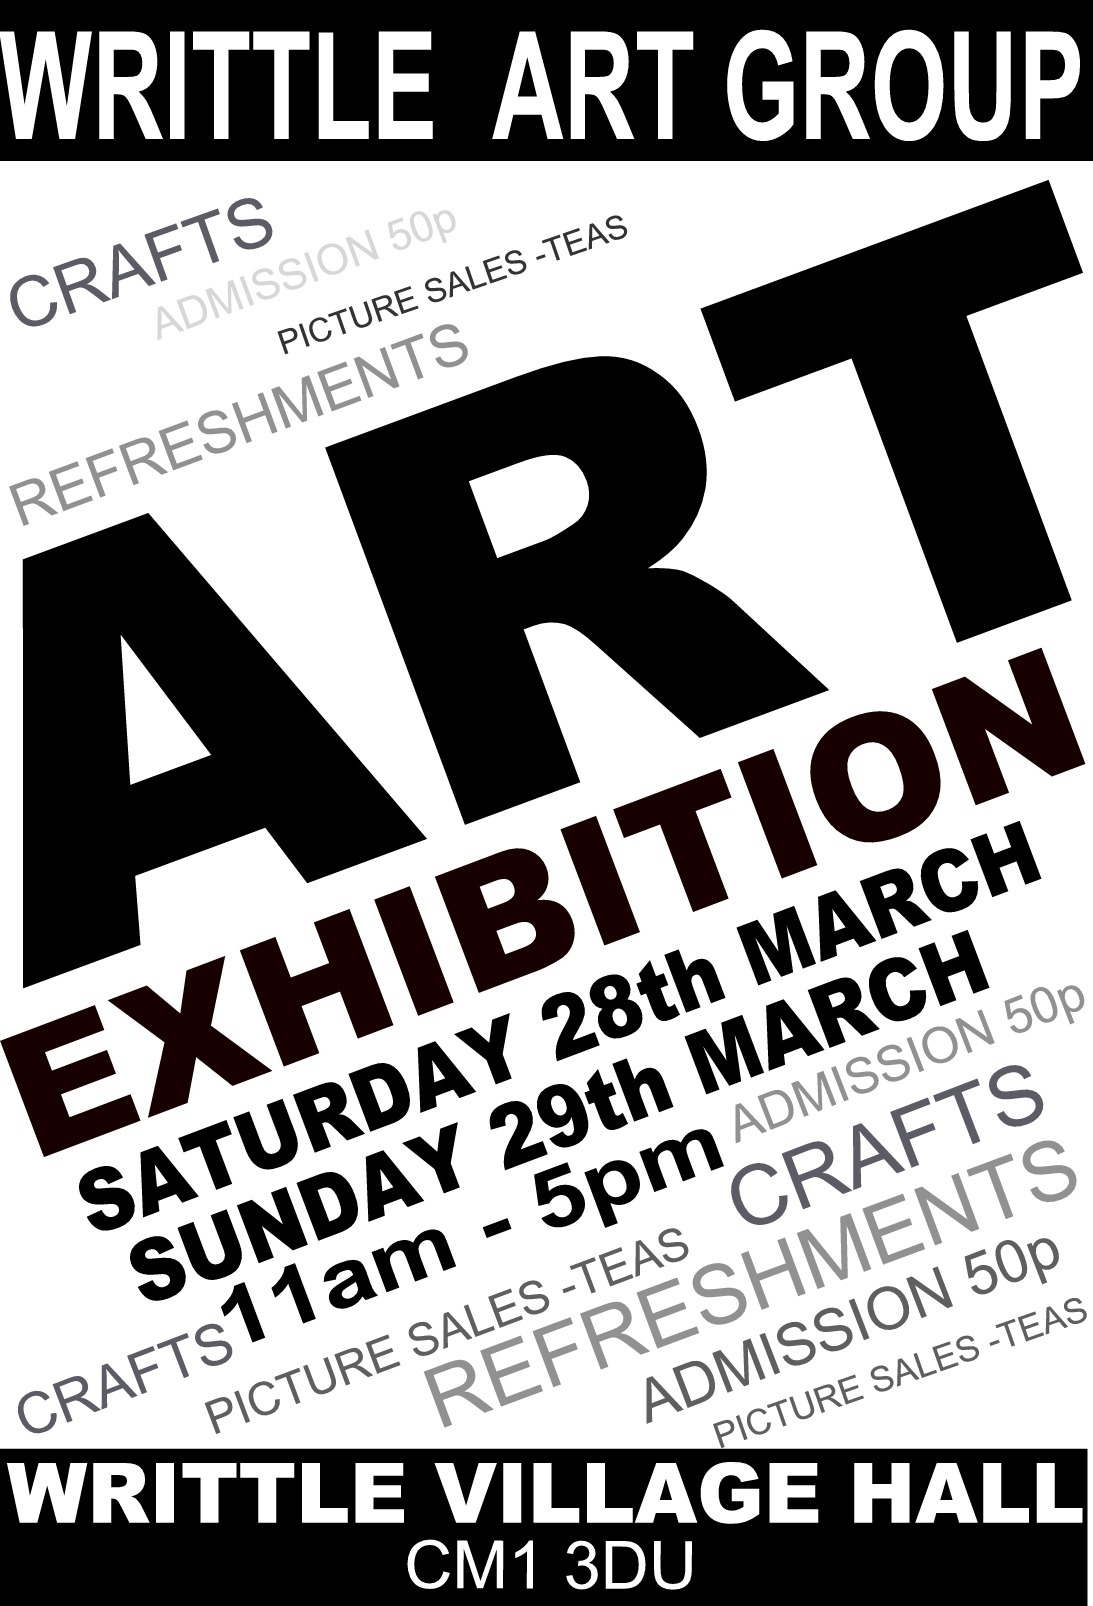 Writtle Group Art Exhibition